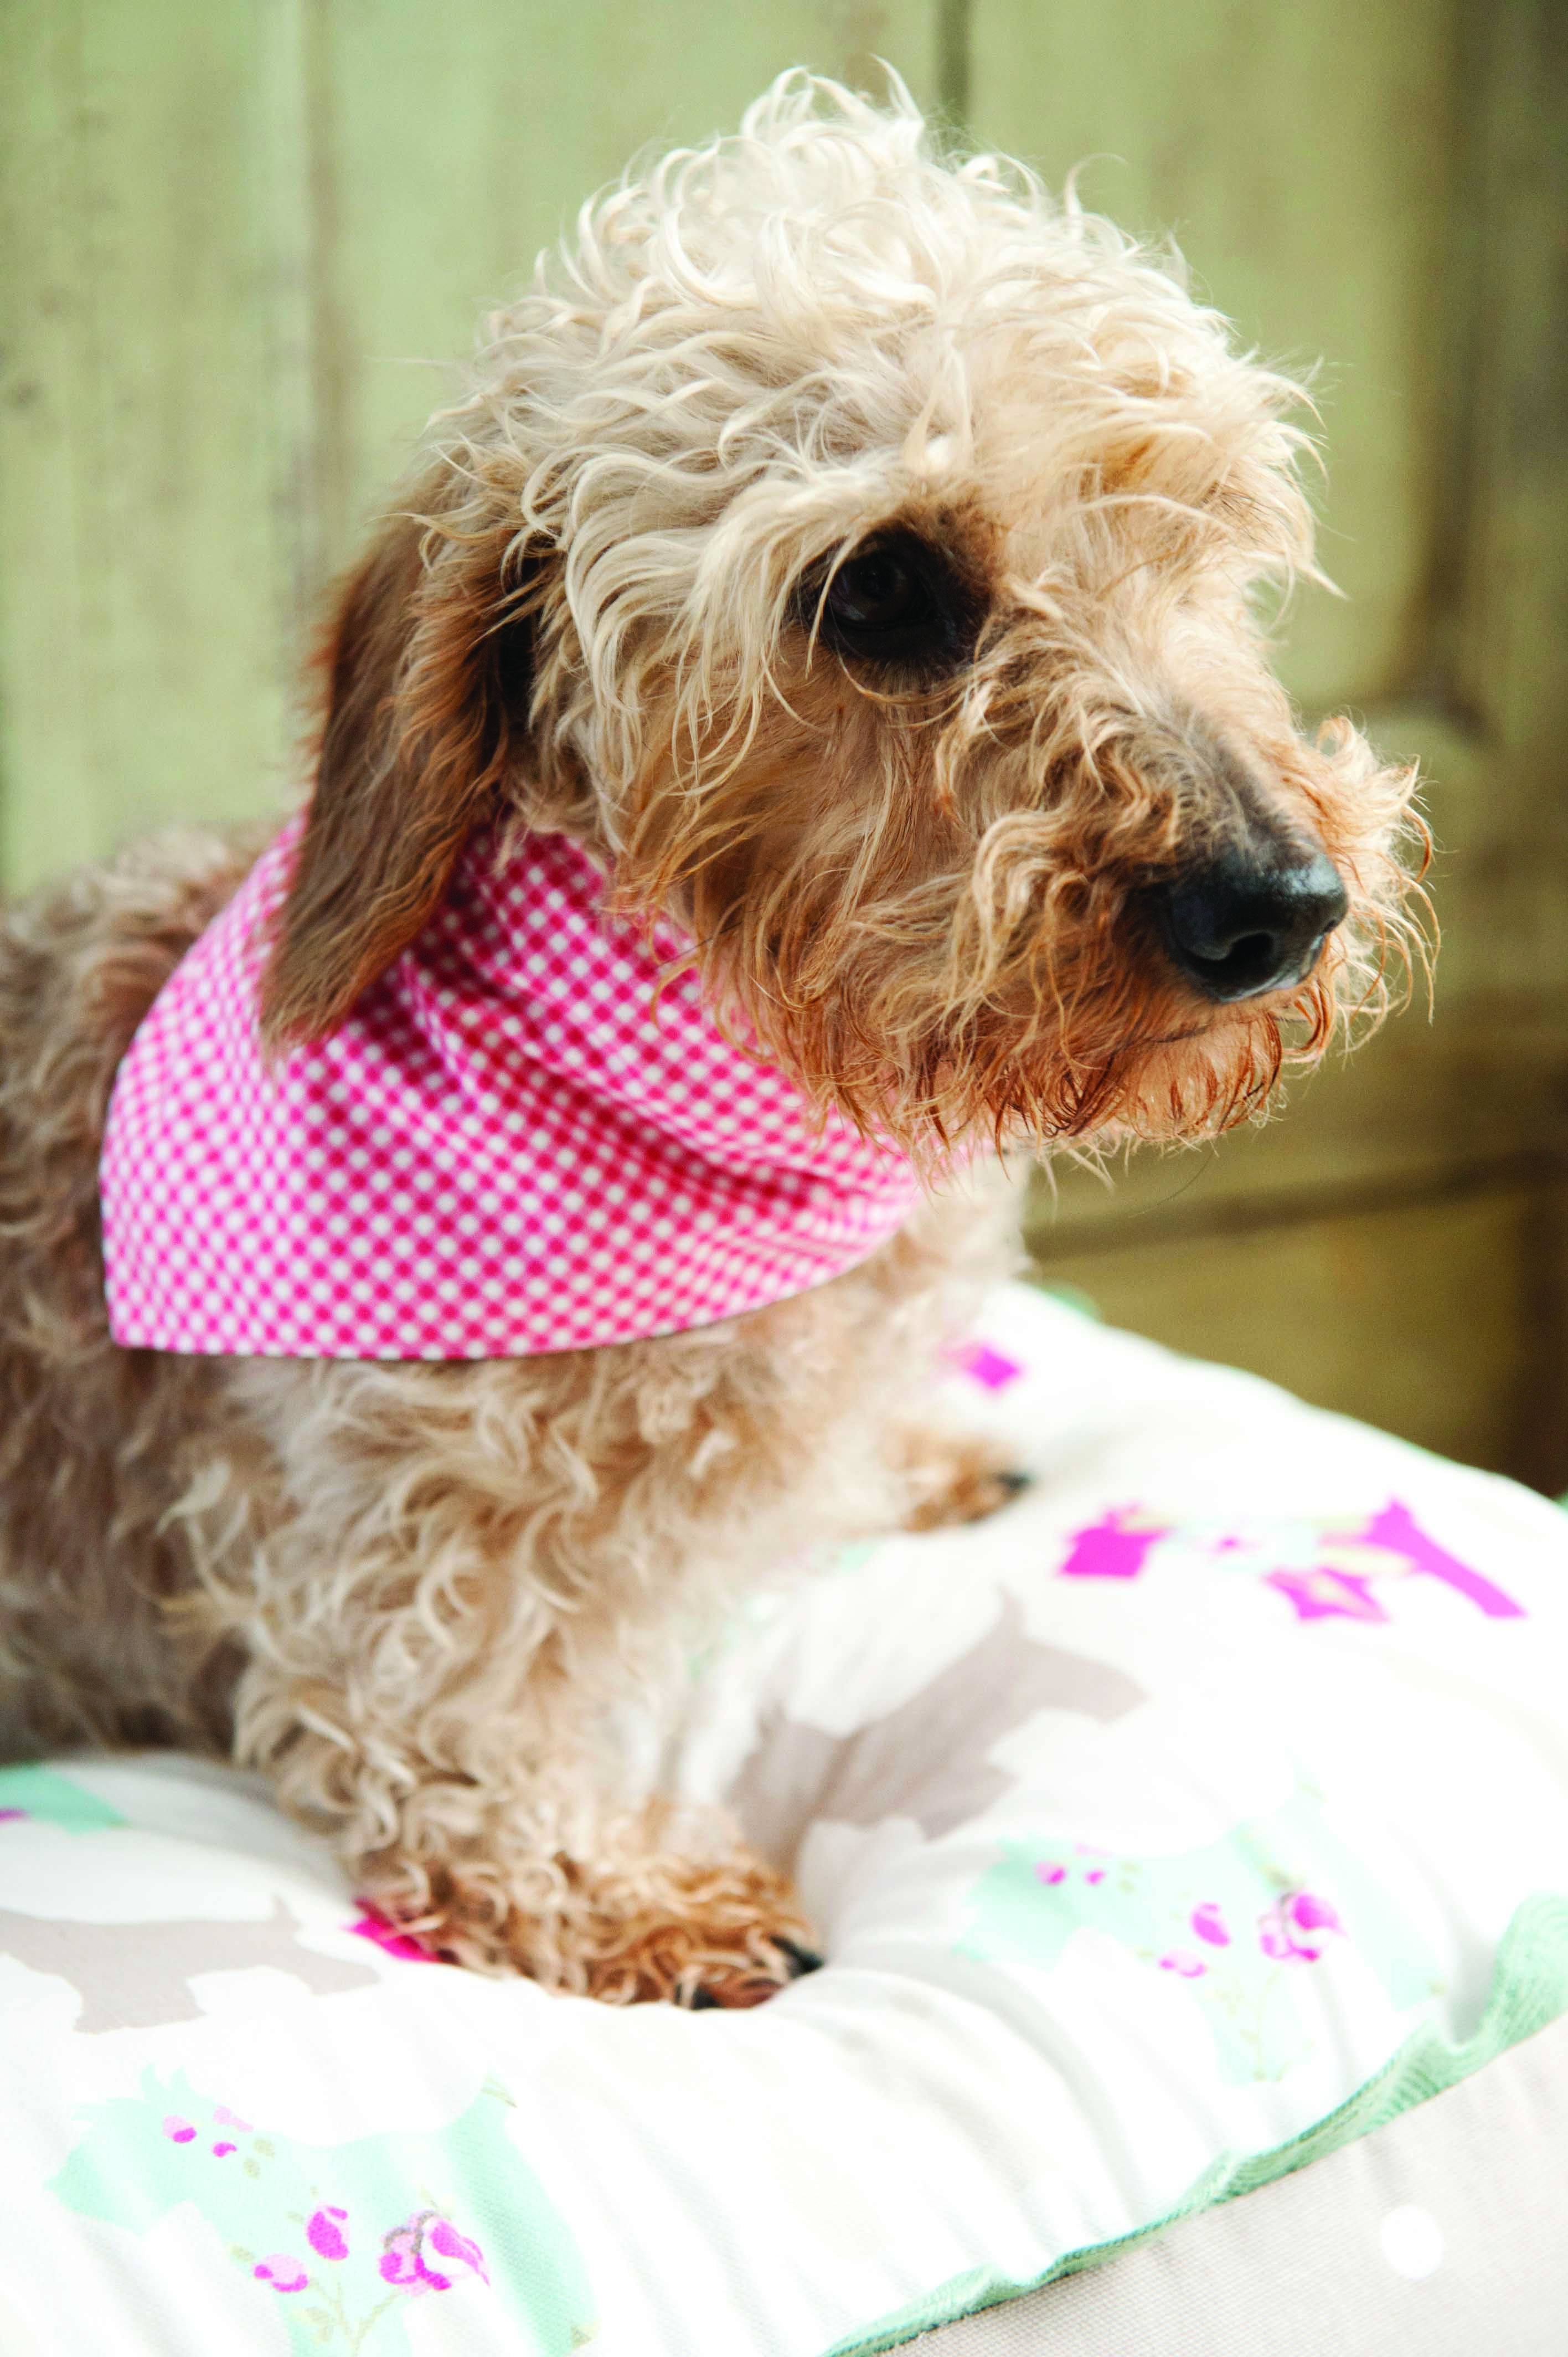 This nice and easy free dog bandana sewing pattern by mandy shaw this nice and easy free dog bandana sewing pattern by mandy shaw attaches to your dogs collar and makes any dog look like a fashionista jeuxipadfo Gallery